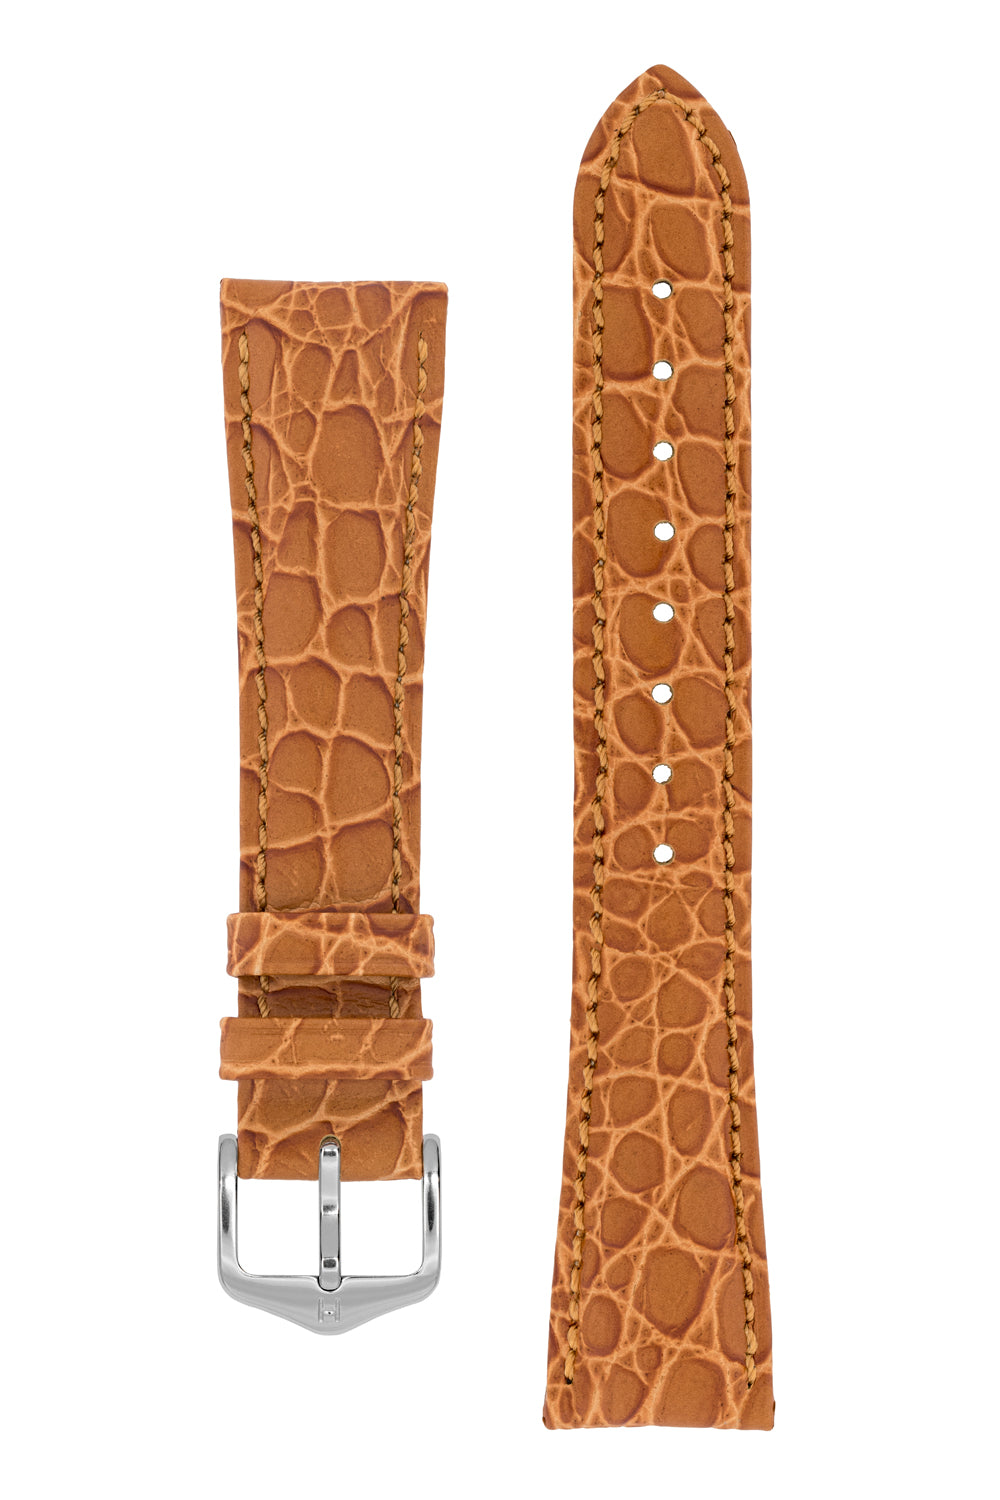 Hirsch ARISTOCRAT Croco Embossed Leather Watch Strap in GOLD BROWN